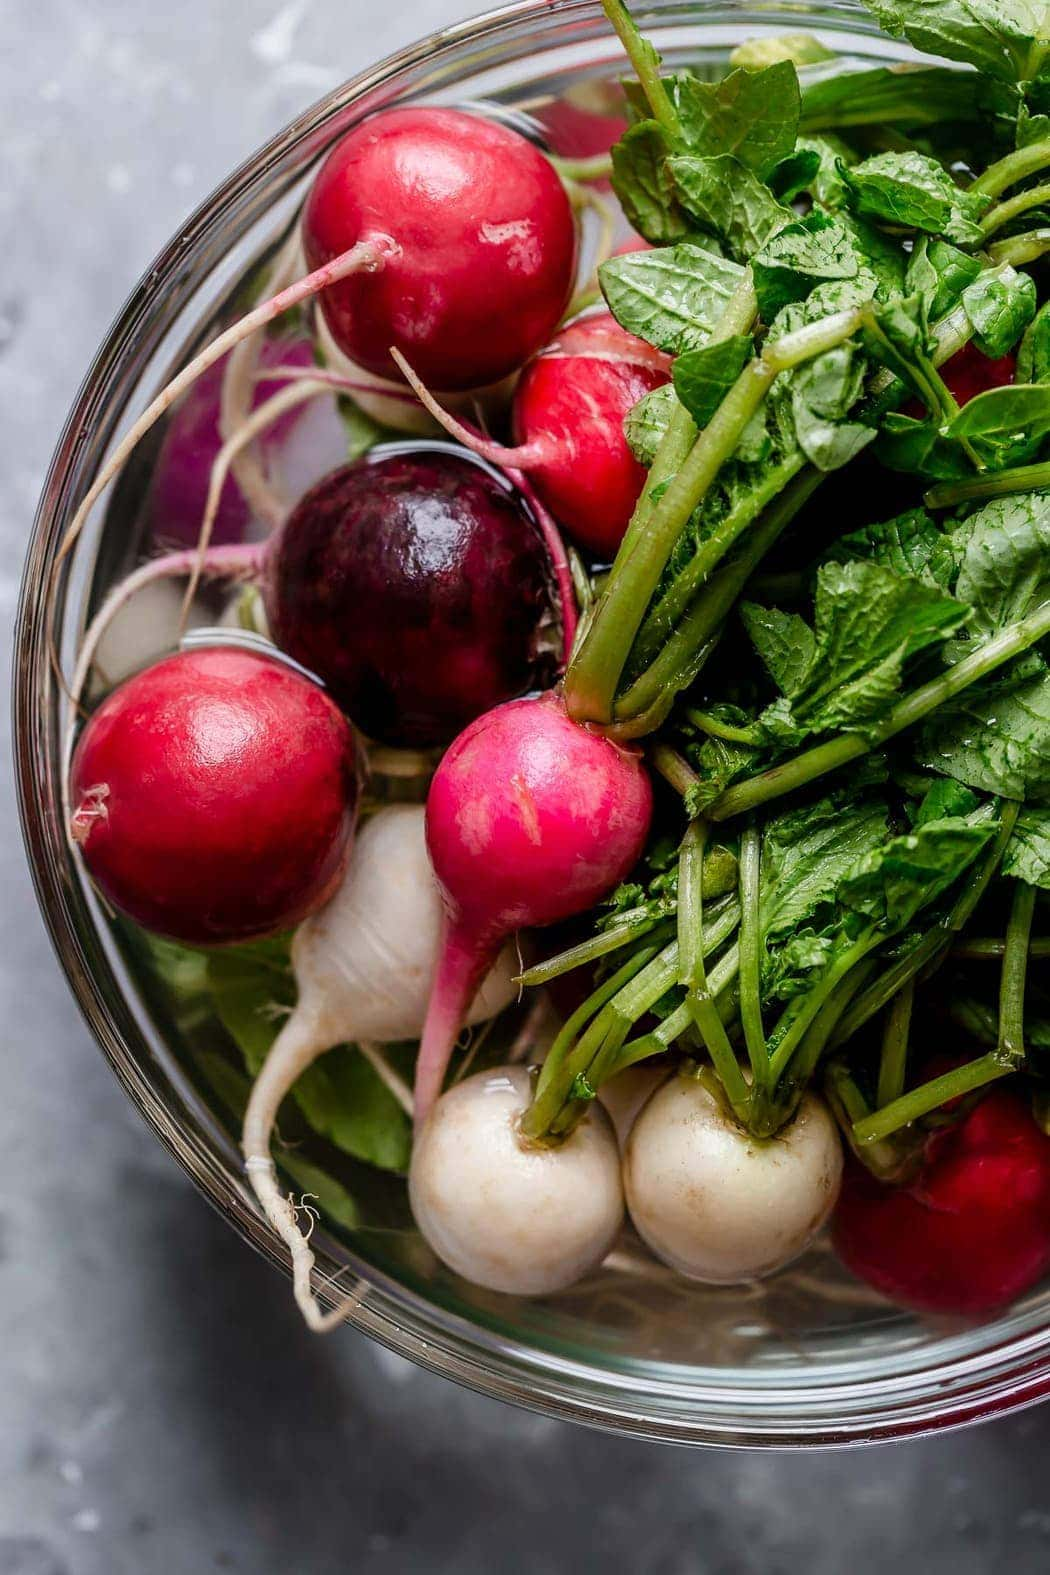 Photo of fresh radishes with greens in a clear bowl filled with water. For the Garlic Roasted Radishes.